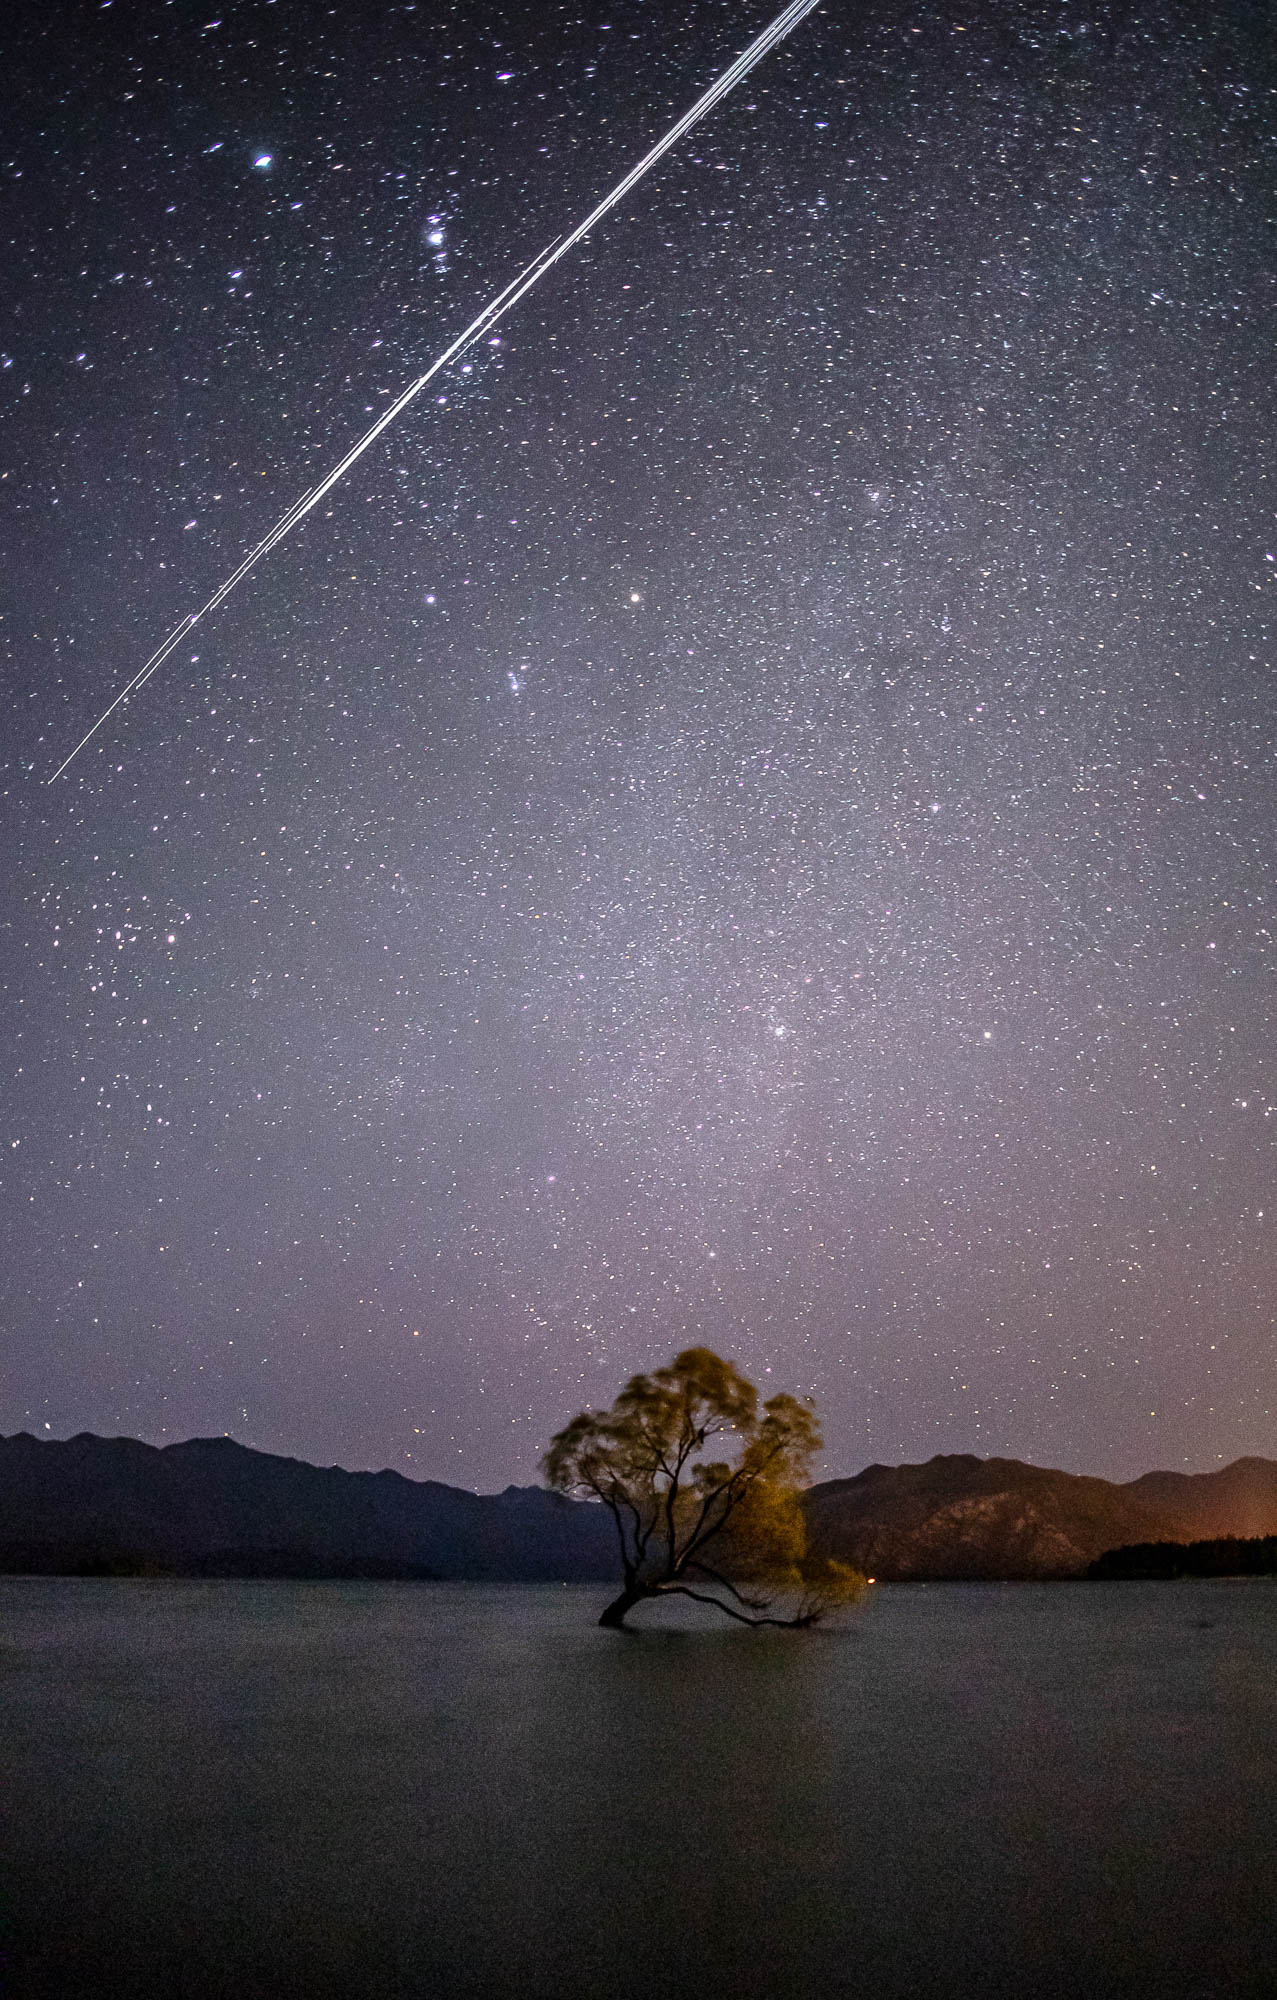 The famous 'Wanaka Tree', New Zealand, lit up by a starlit sky SpaceX Starlink space stations passing above.